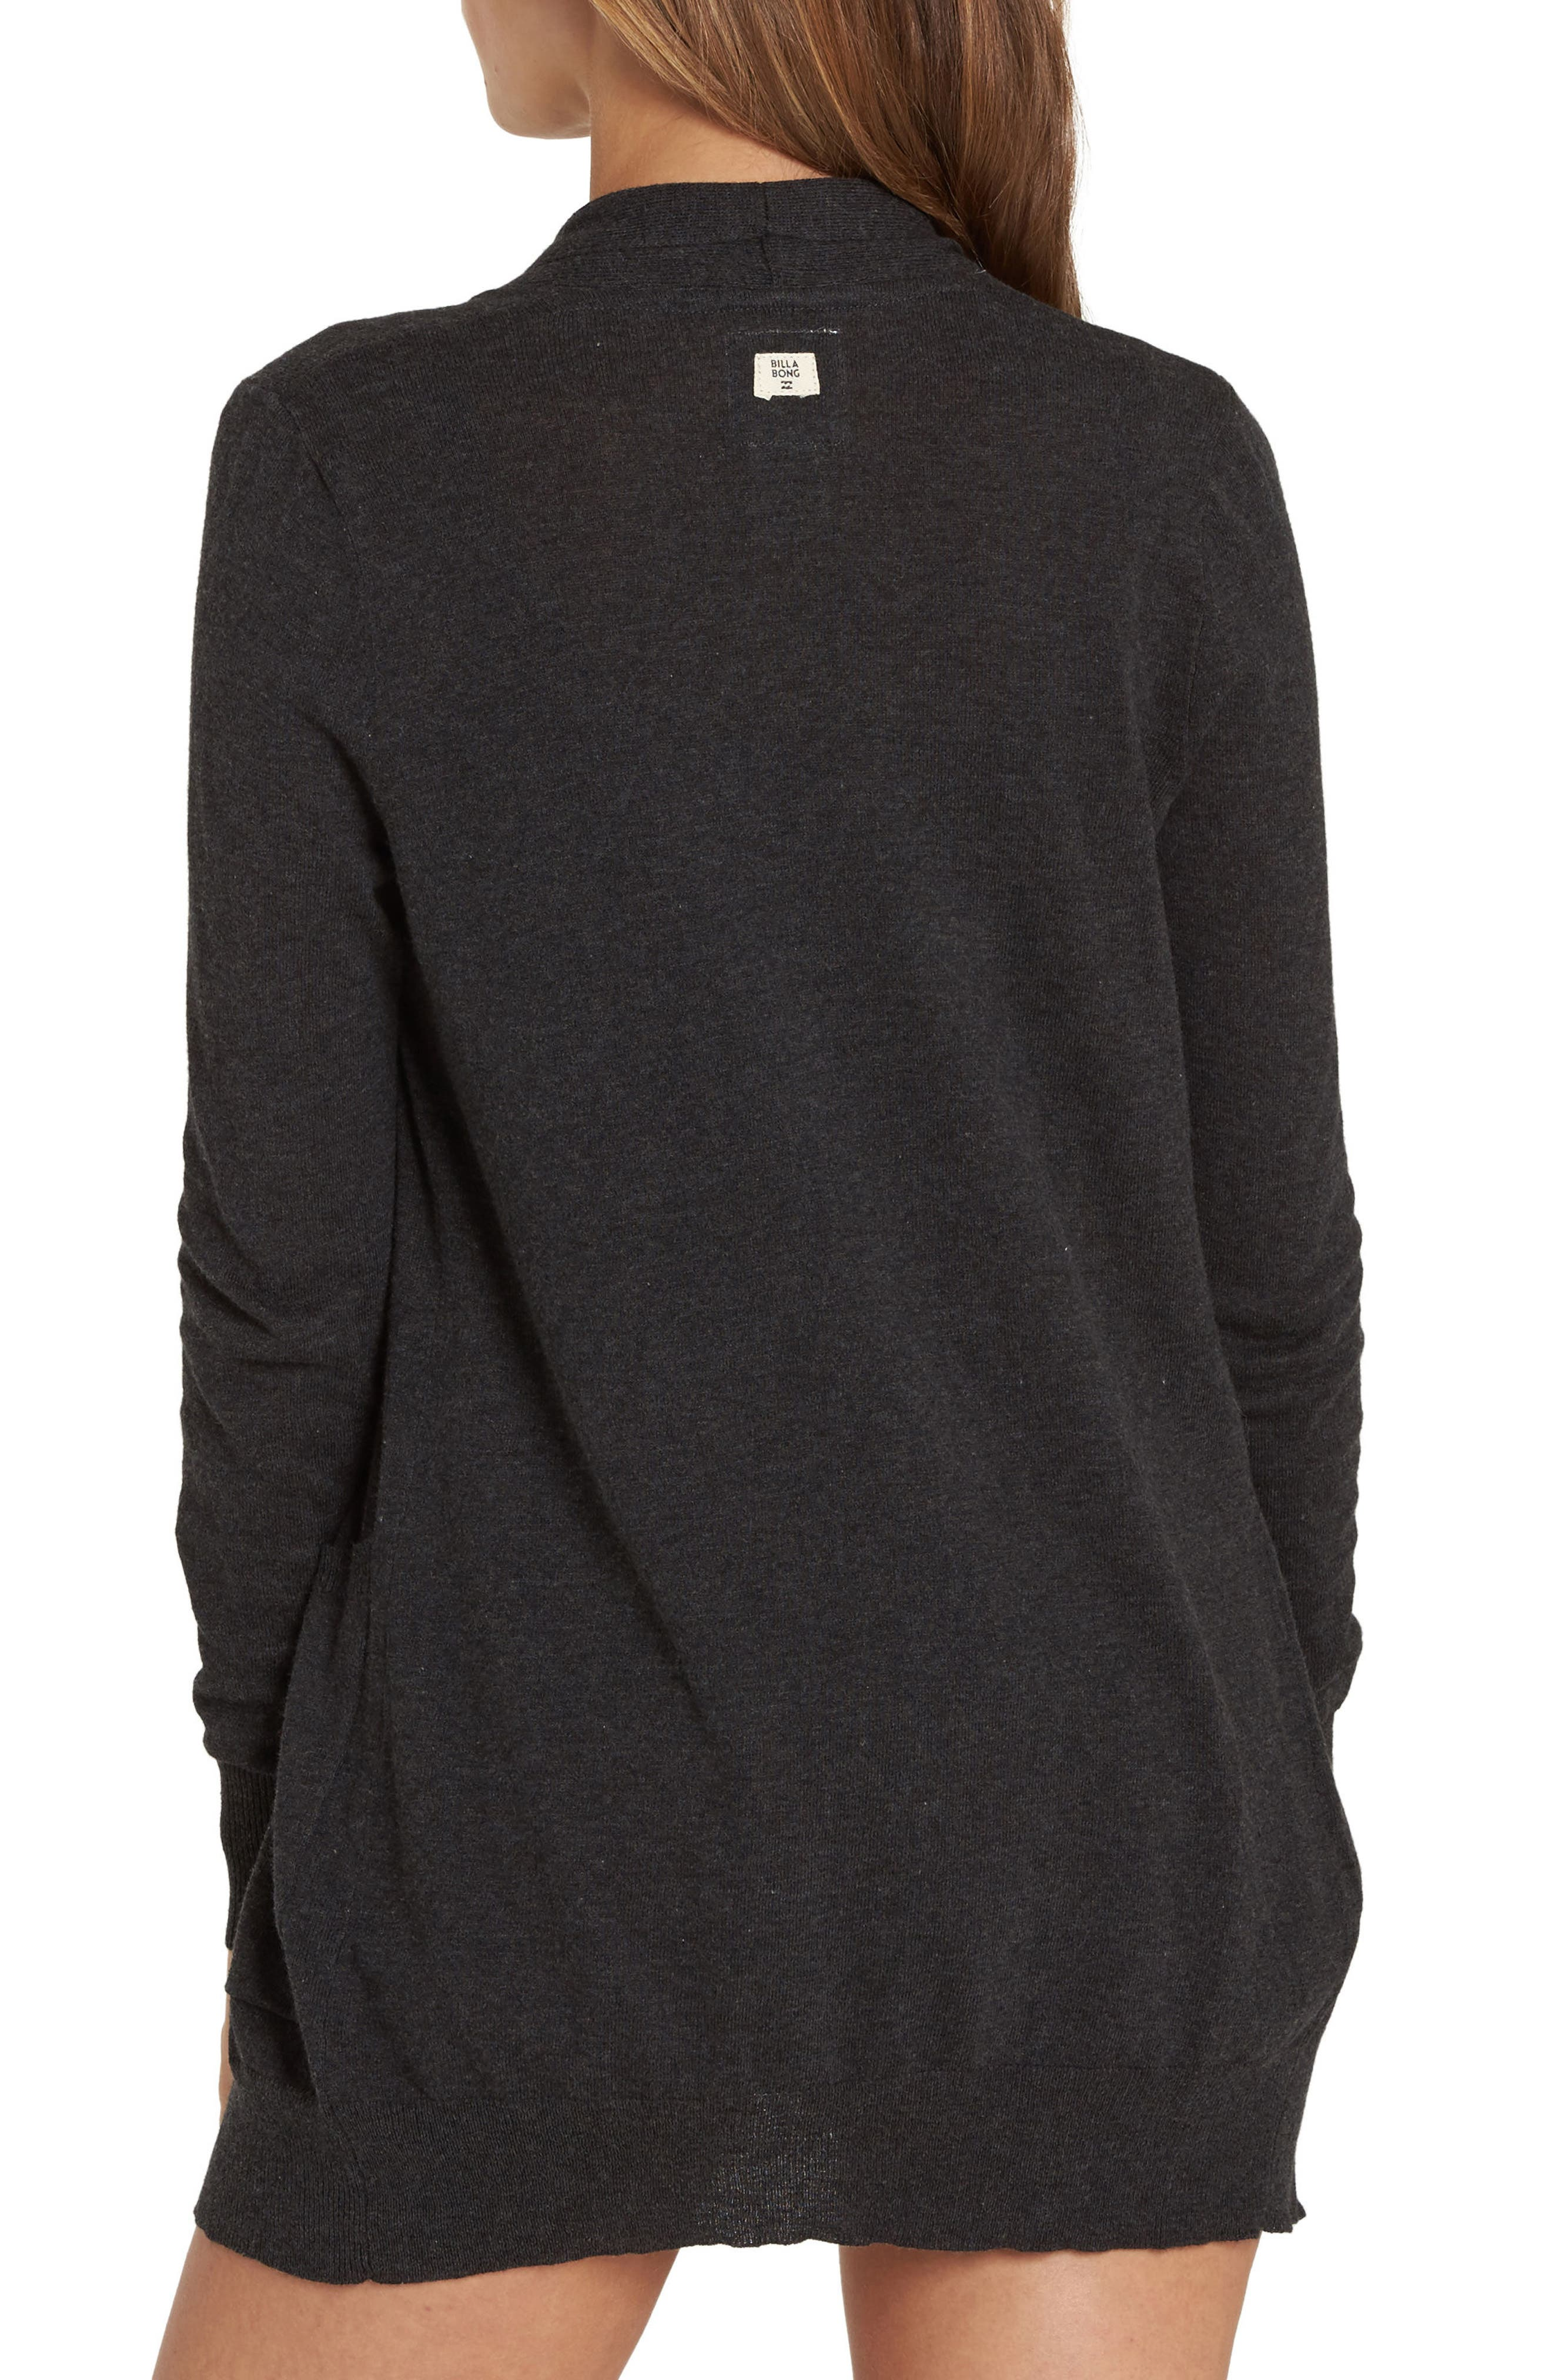 Line Games Sweater,                             Alternate thumbnail 2, color,                             Off Black